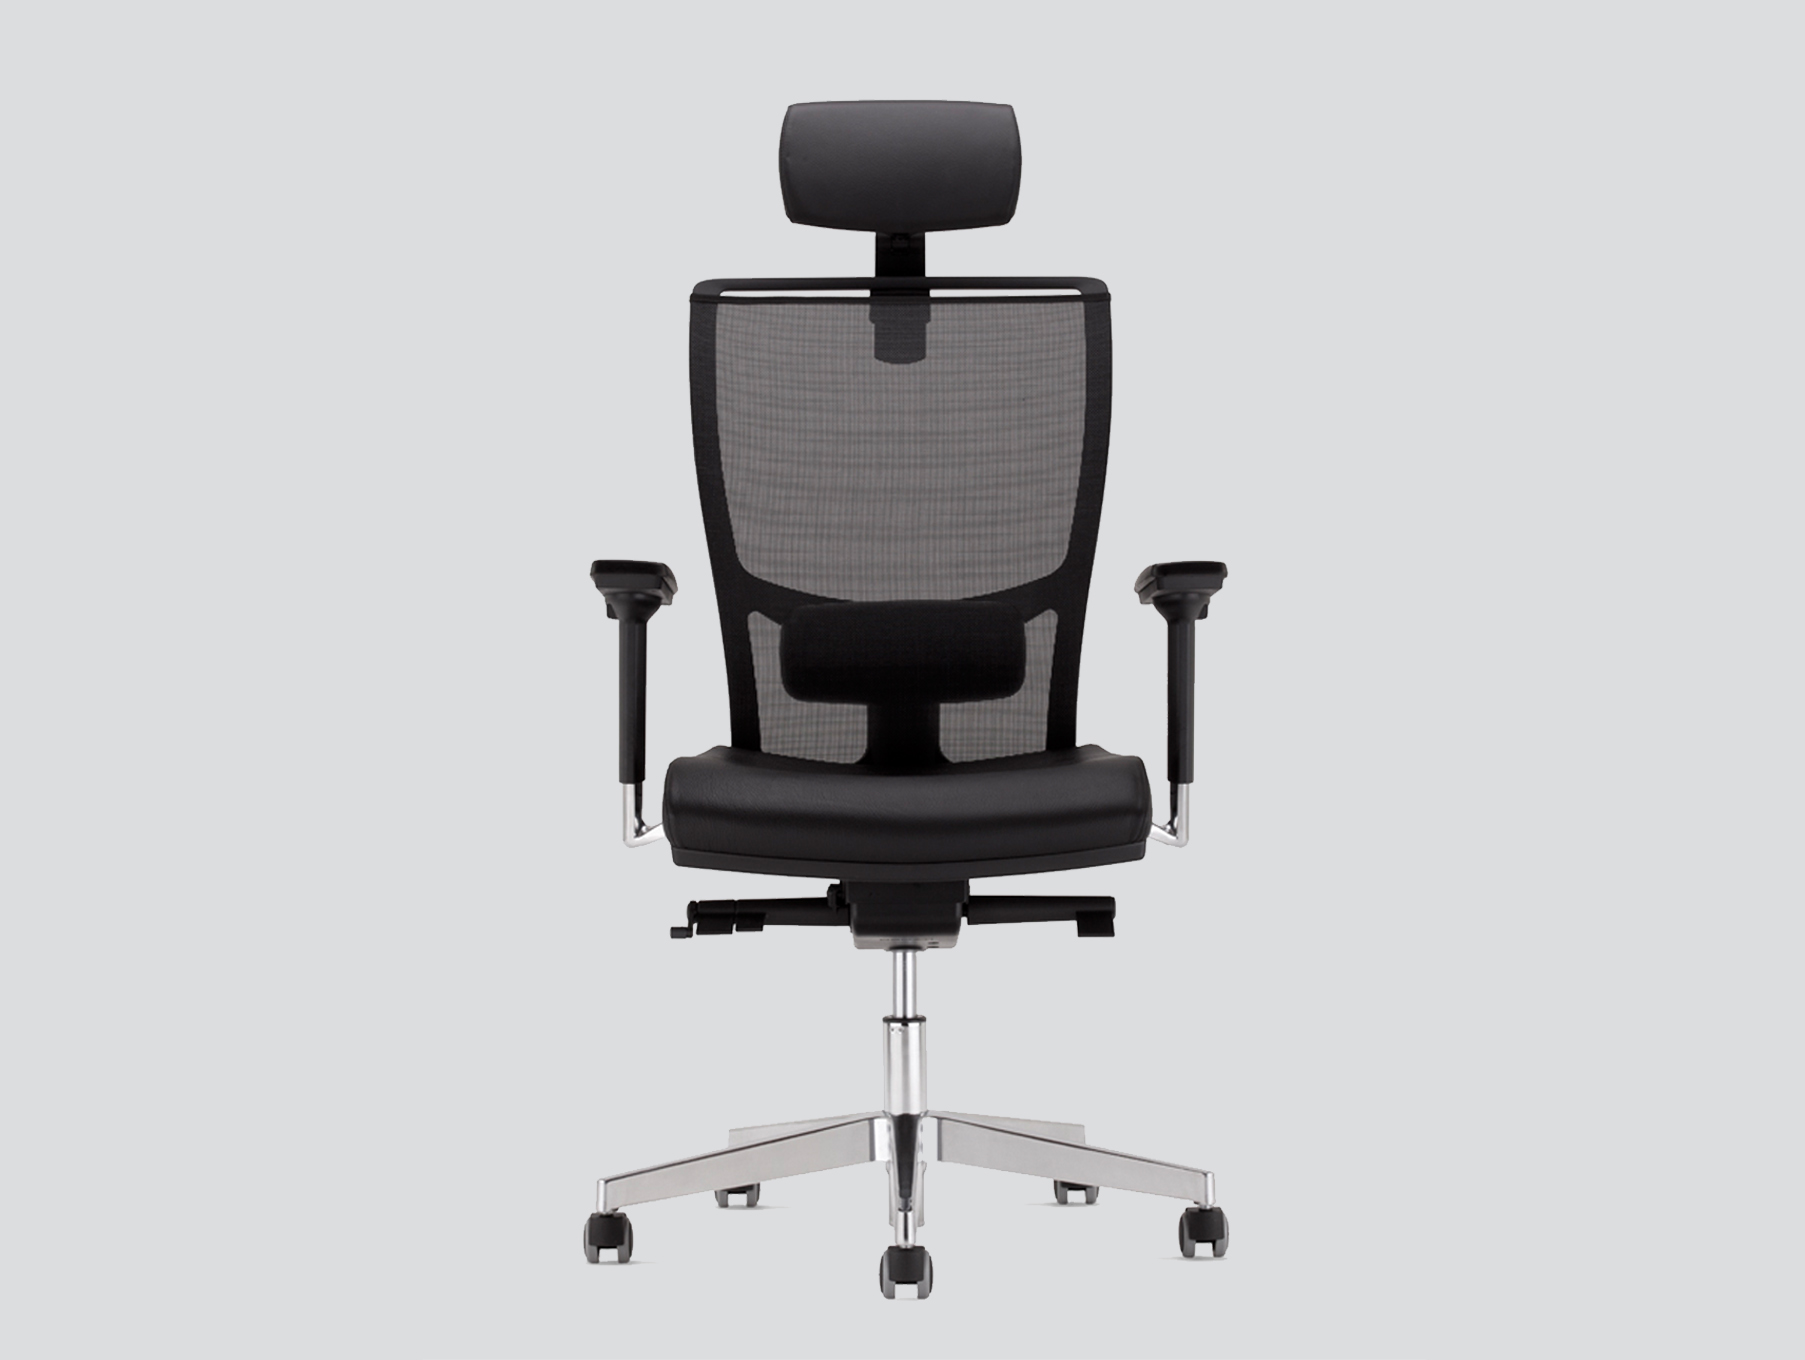 Chair Price Z Body Executive Chair Online Store Lebanon Office Chairs With Headrest Lebanon Ergonomic Office Chairs With Headrest Lebanon Executive Chair